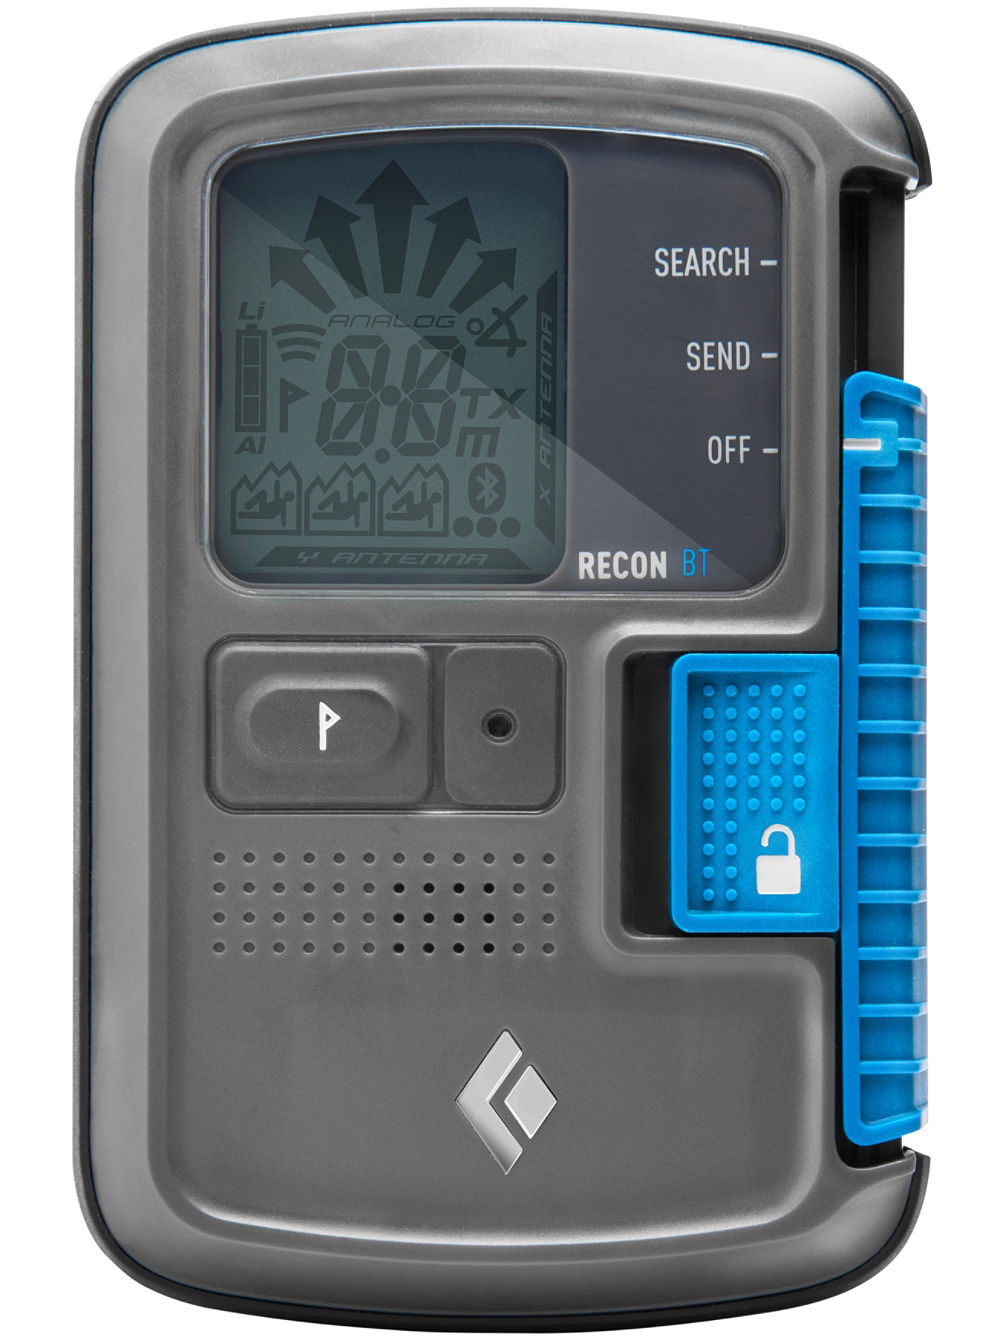 Recon BT Avalanche Beacon Arva